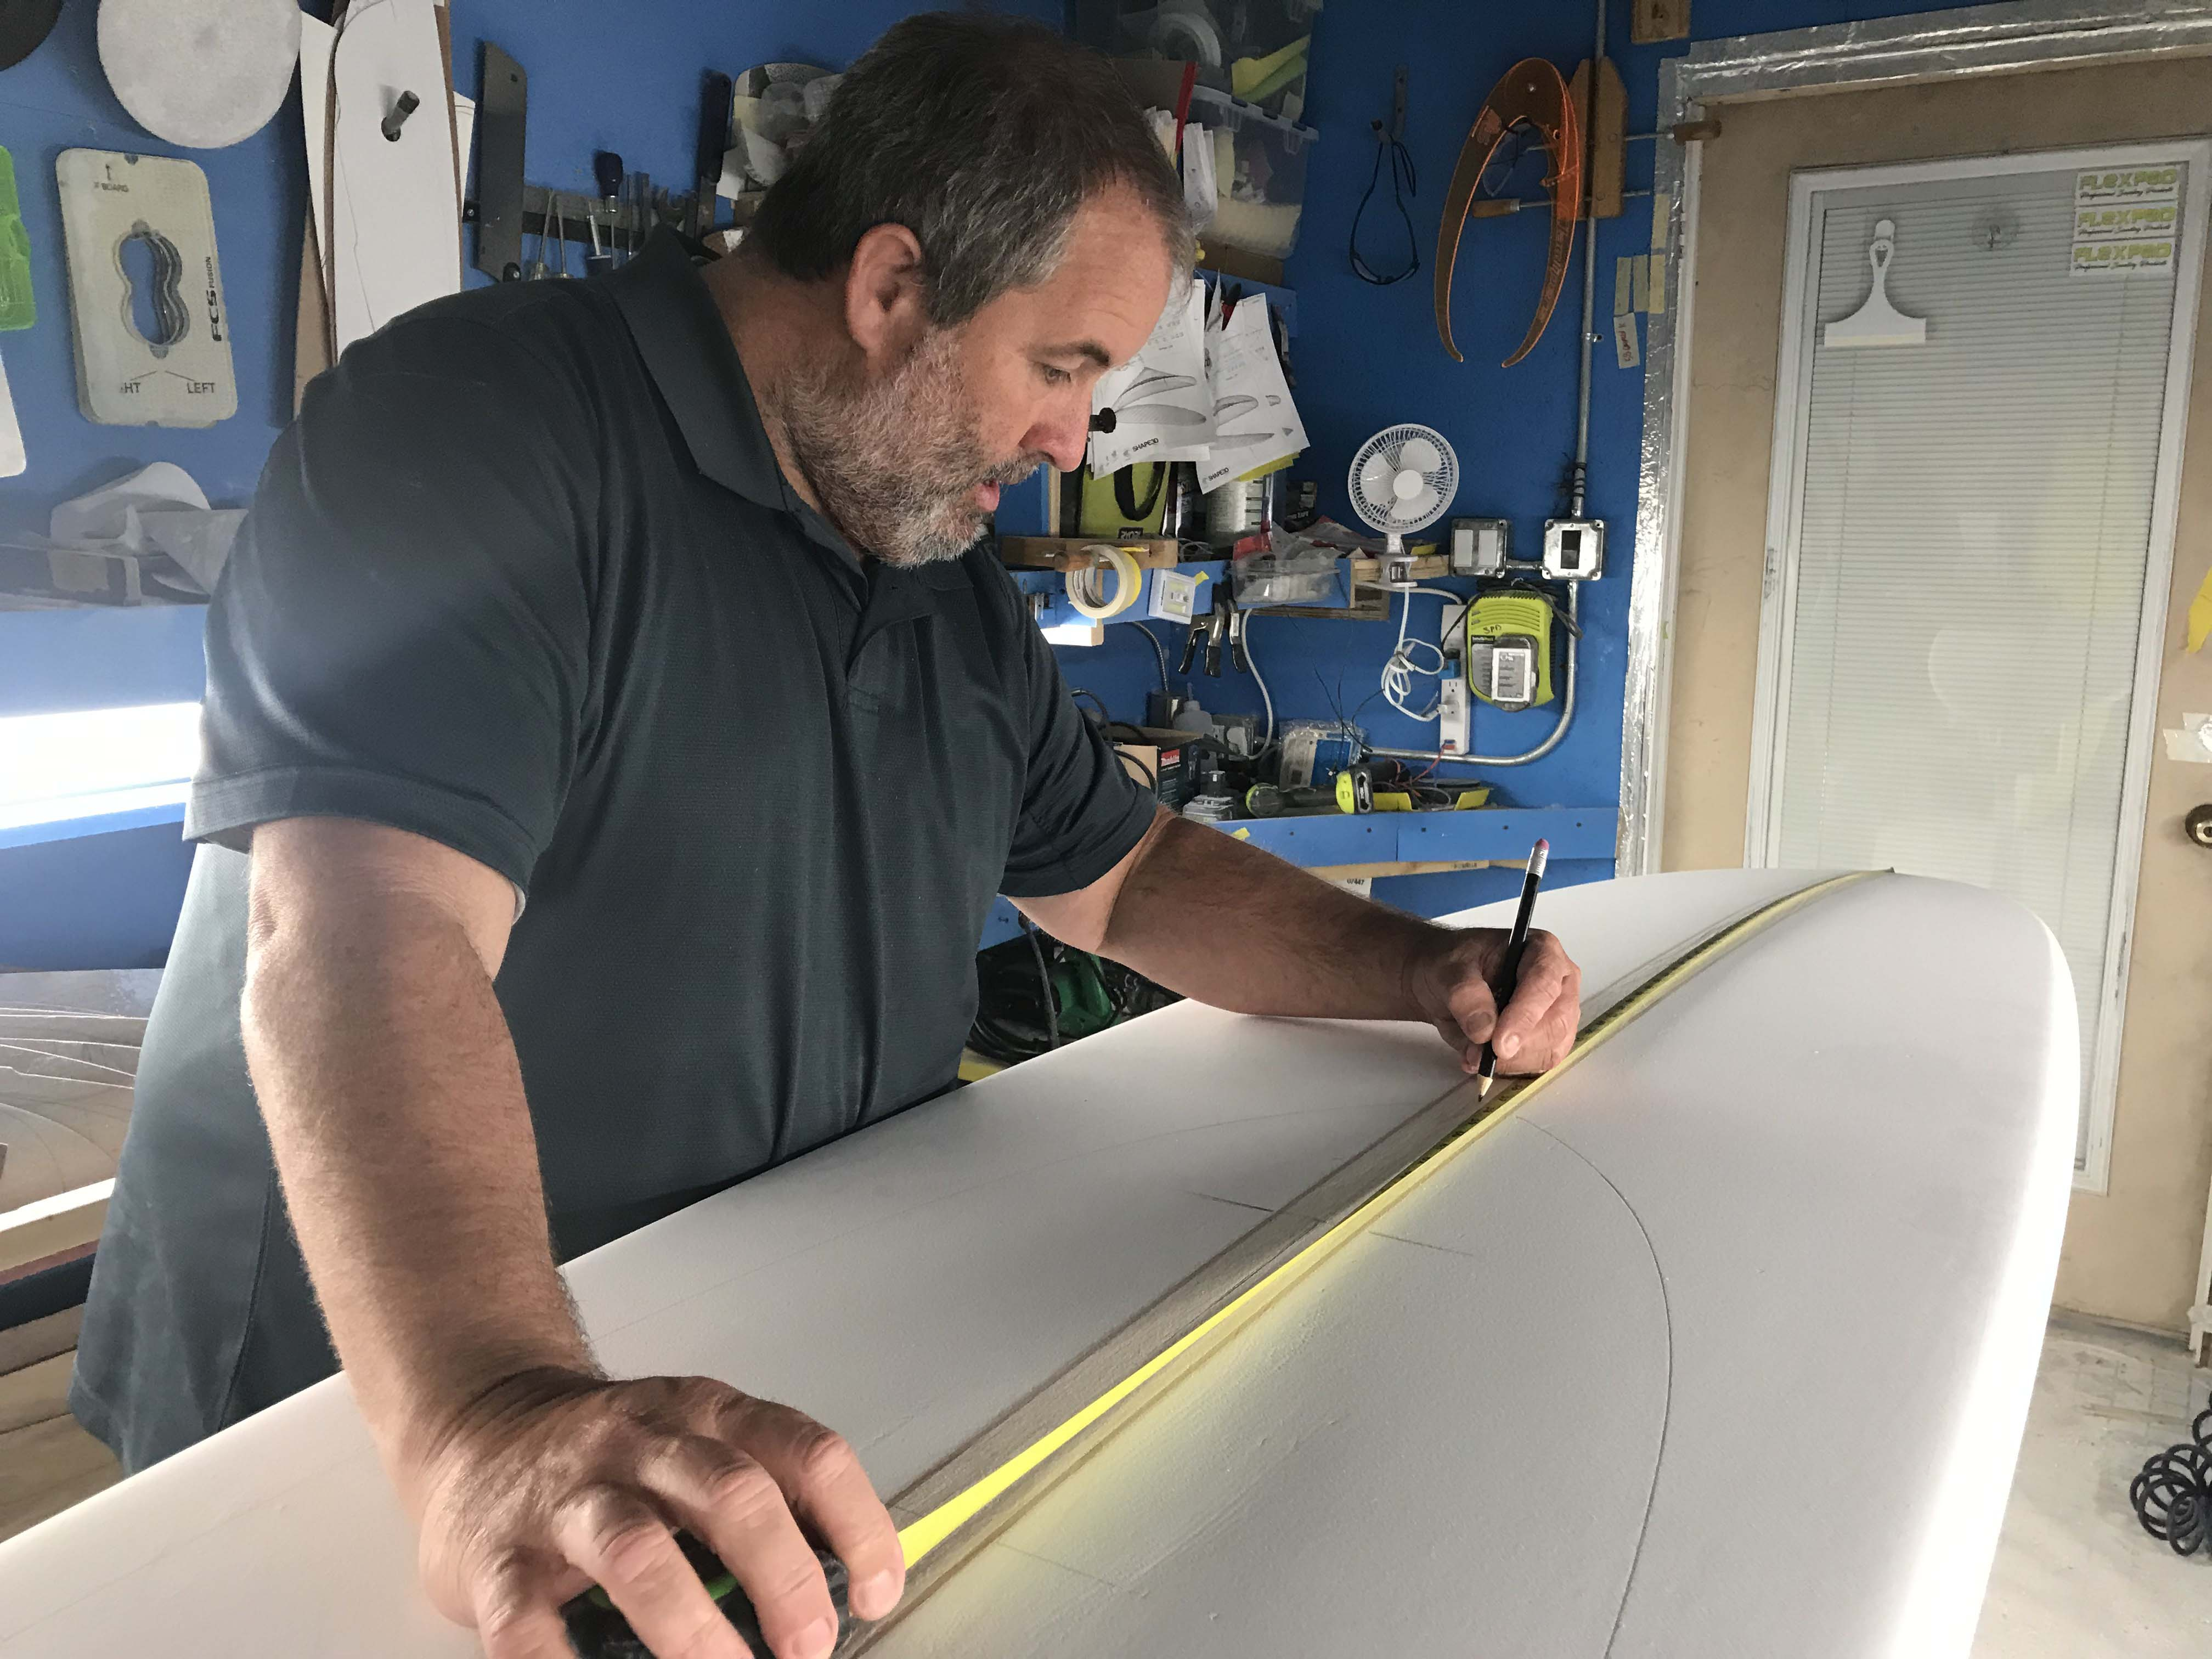 Stephen Pearson Shaping a surfboard